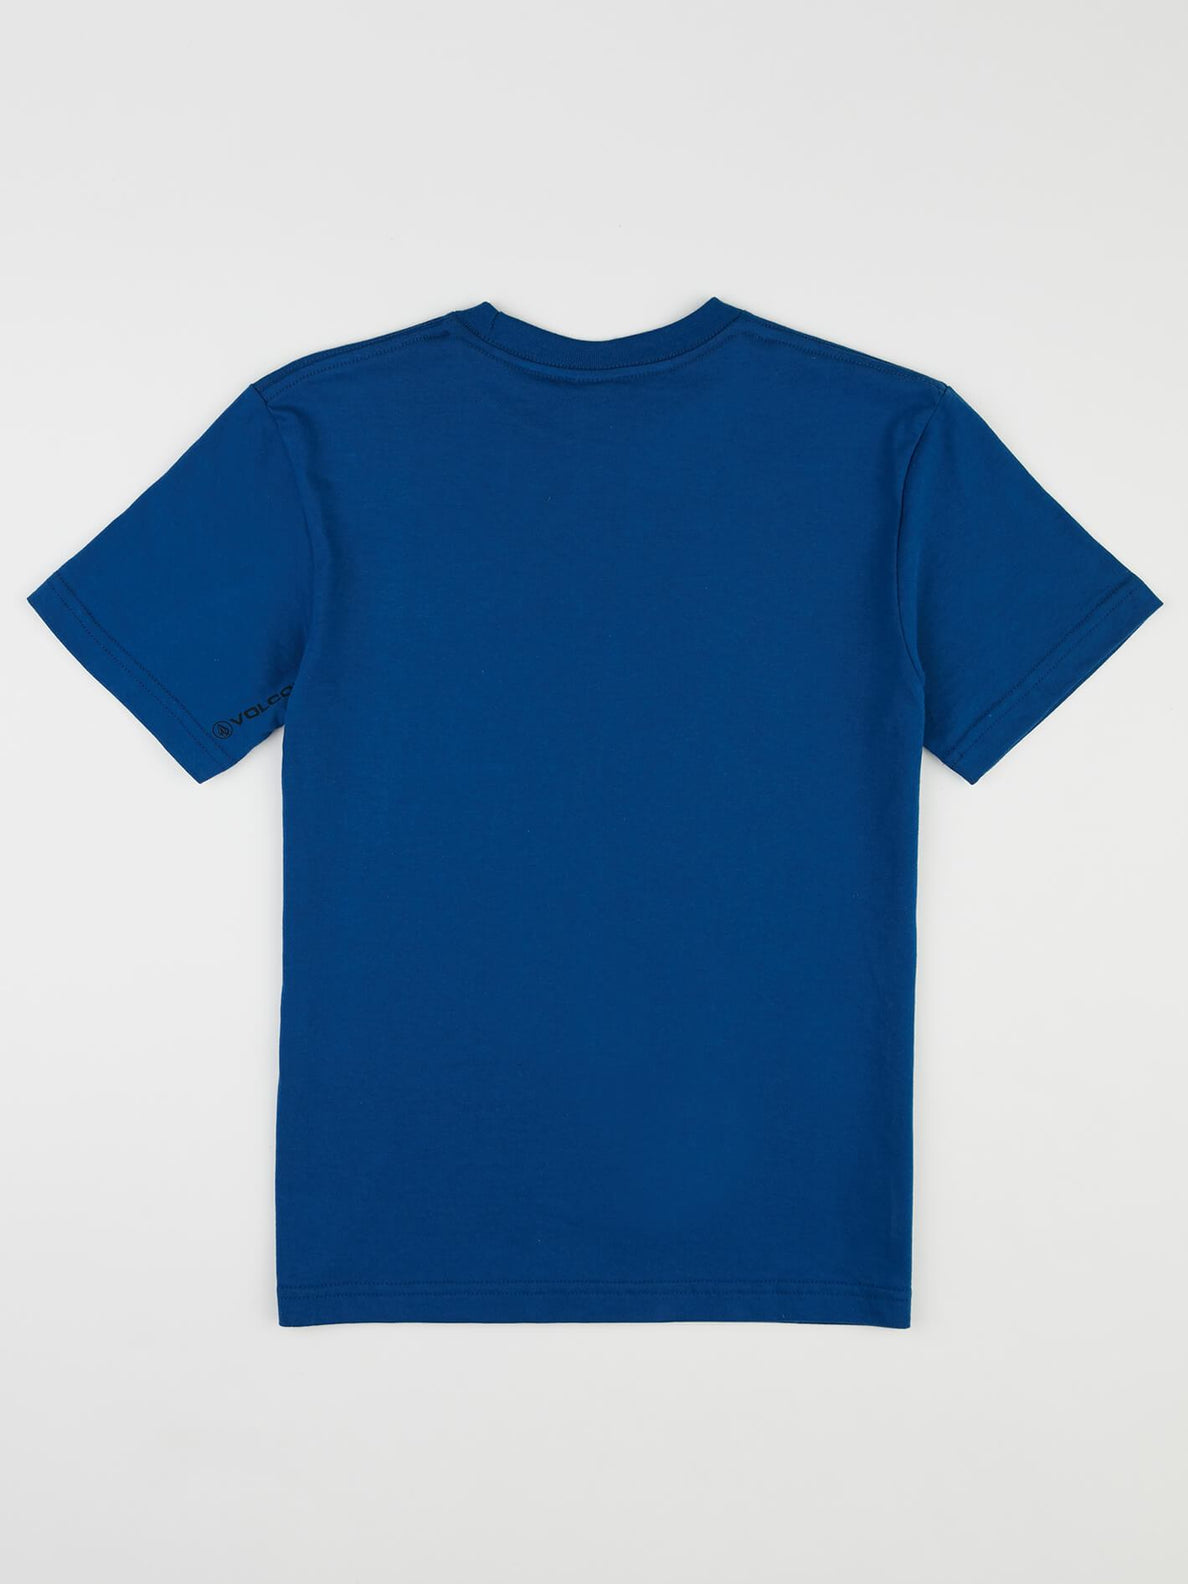 Big Boys Jolly Rebel Tee In Camper Blue, Back View